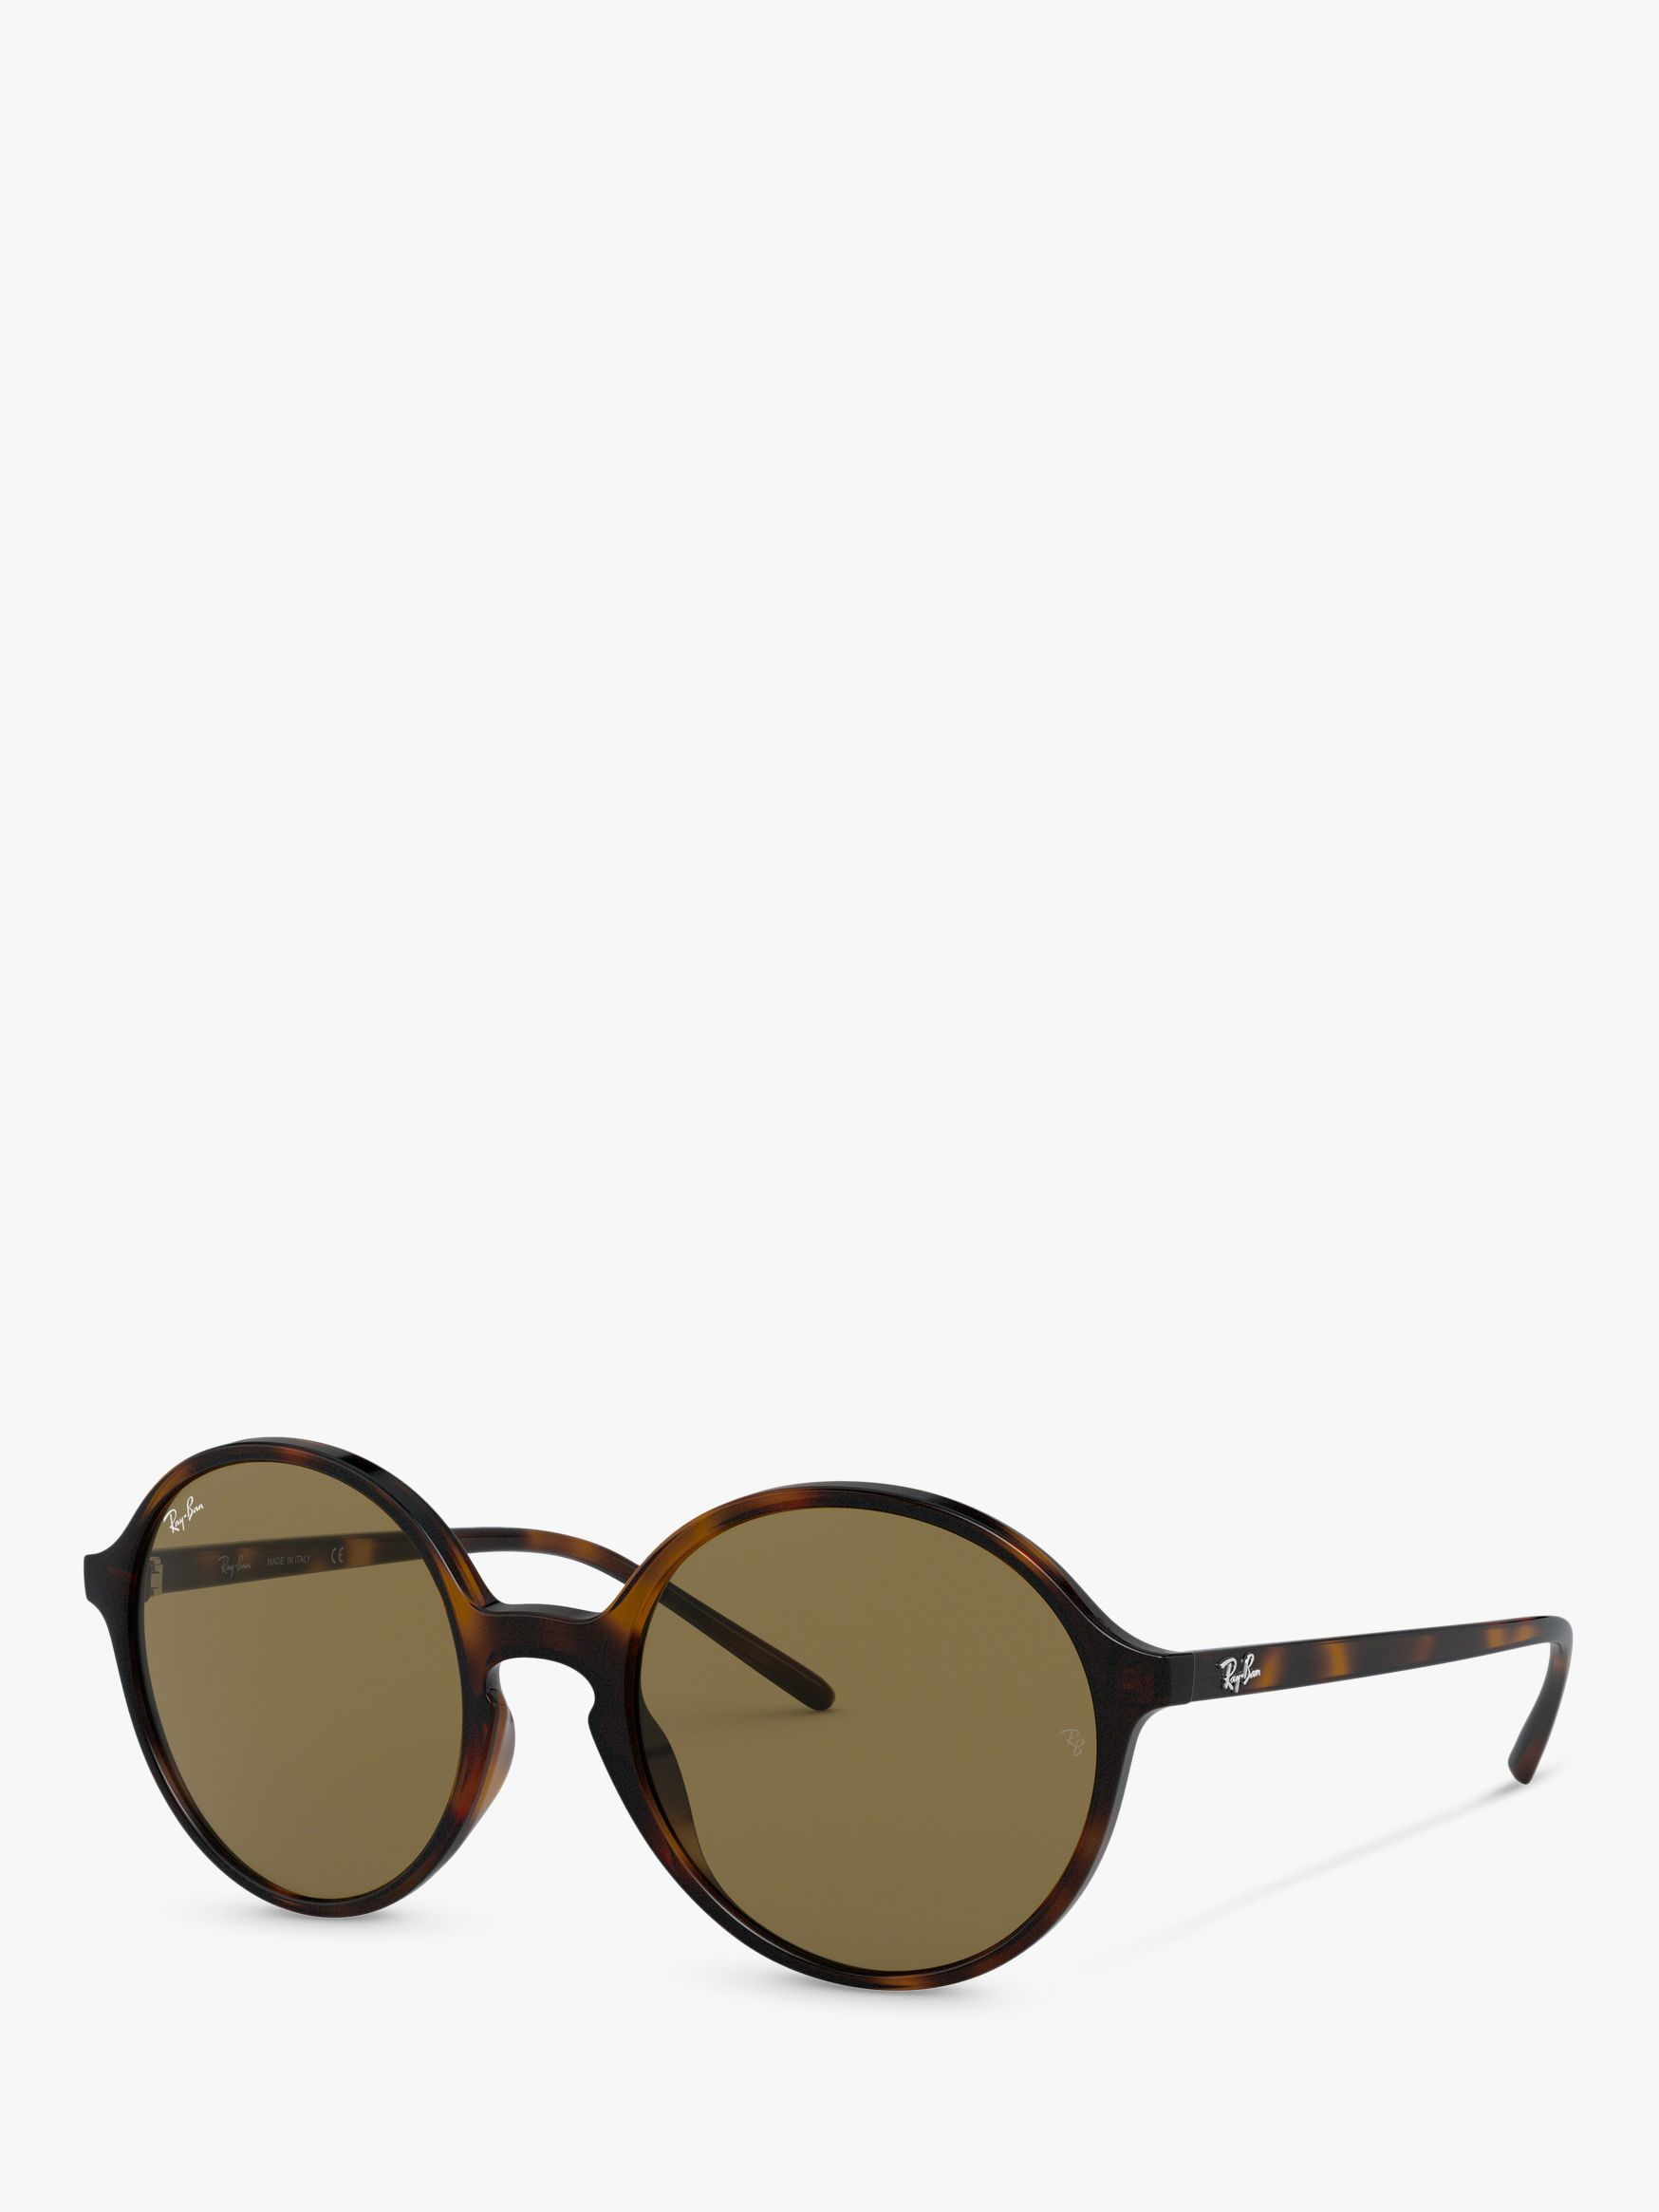 Ray-ban Ray-Ban RB4304 Women's Round Sunglasses